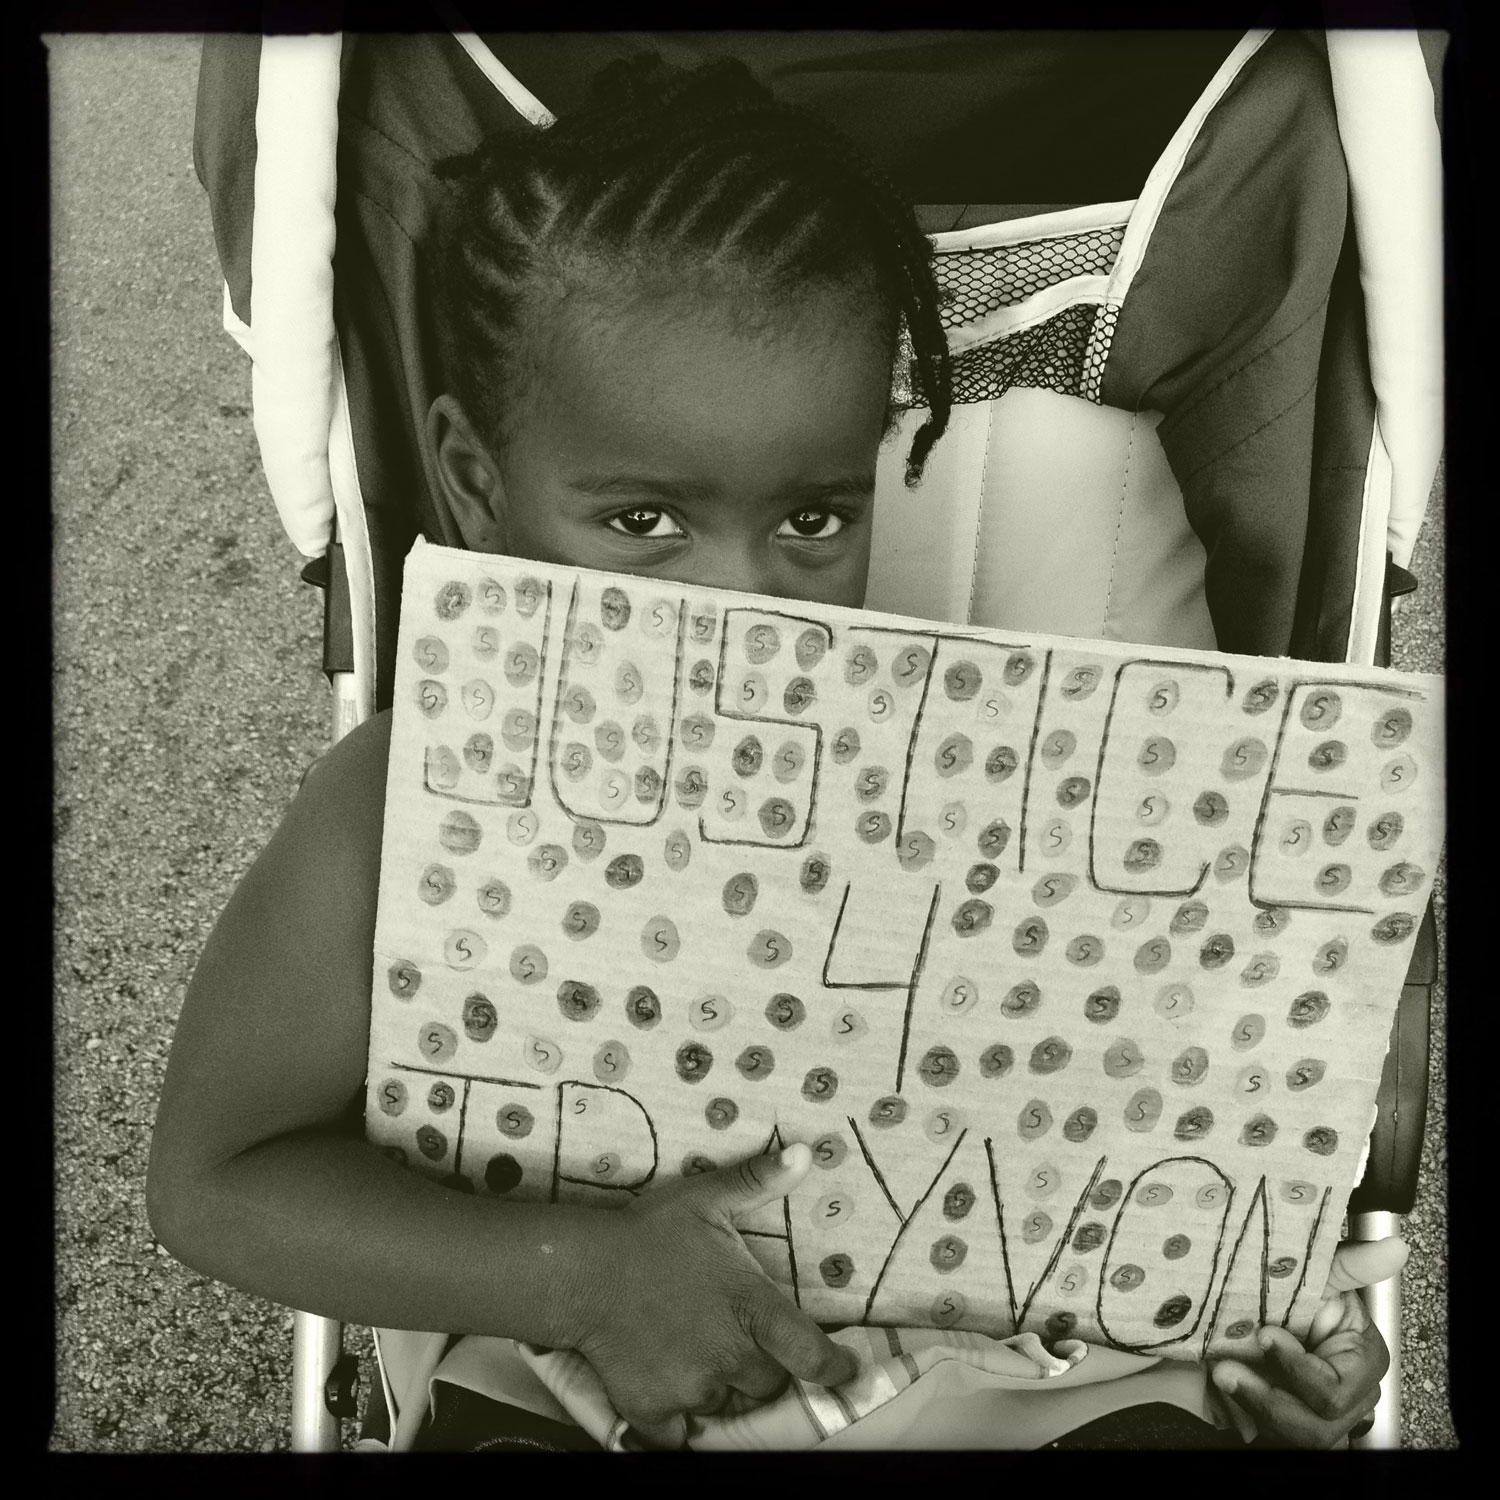 A little girl holds a handmade justice for Trayvon Martin poster at the annual Dr. Martin Luther King Jr. candlelight memorial service, Miami, FL, April 4, 2012